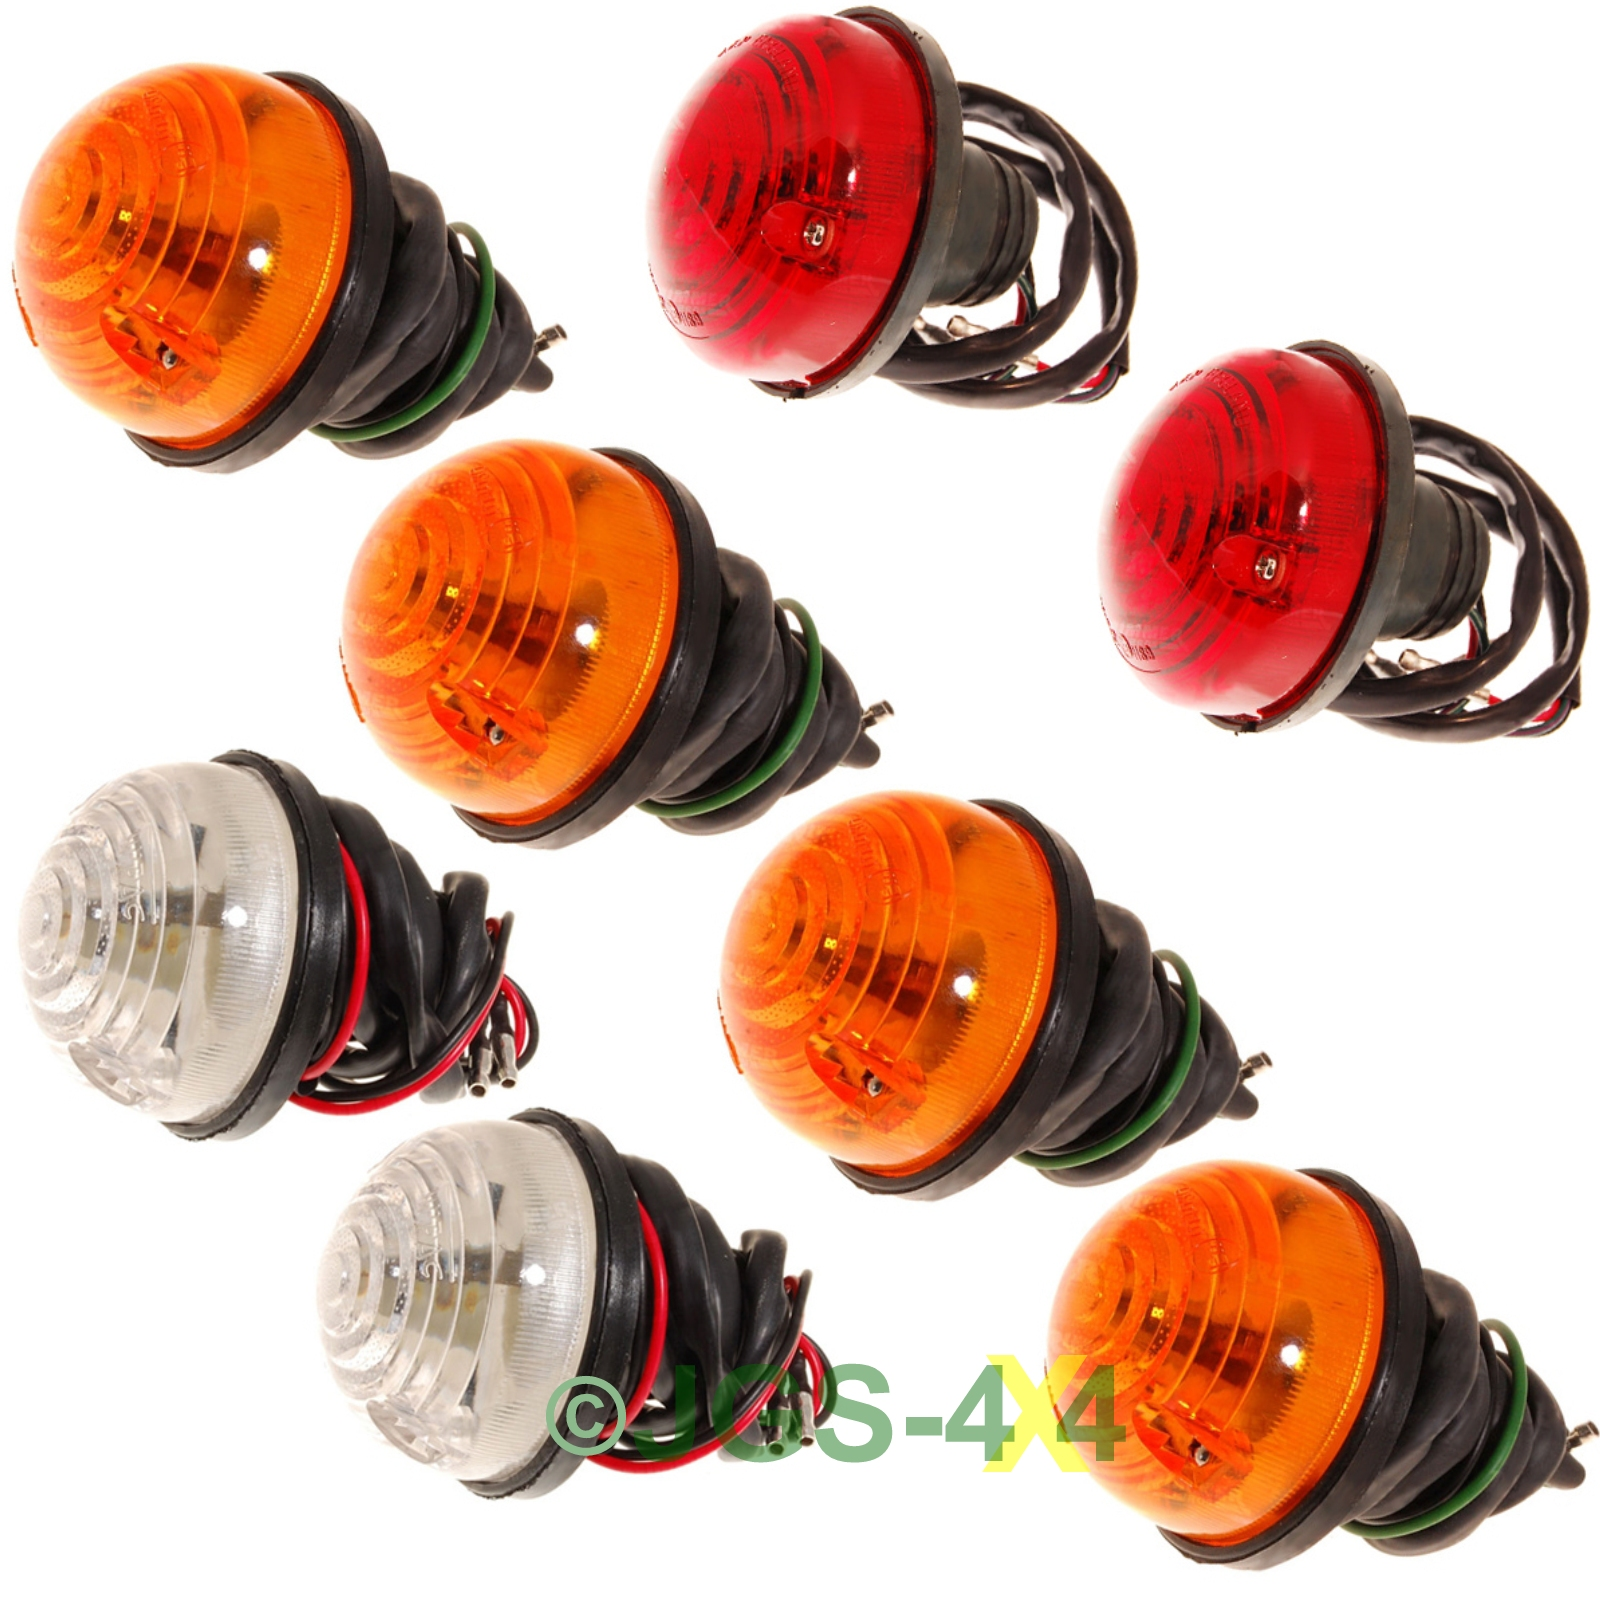 Pair Of Clear Front Indicator Lights For Land Rover: Land Rover Defender & Series Side Light Indicator & Tail